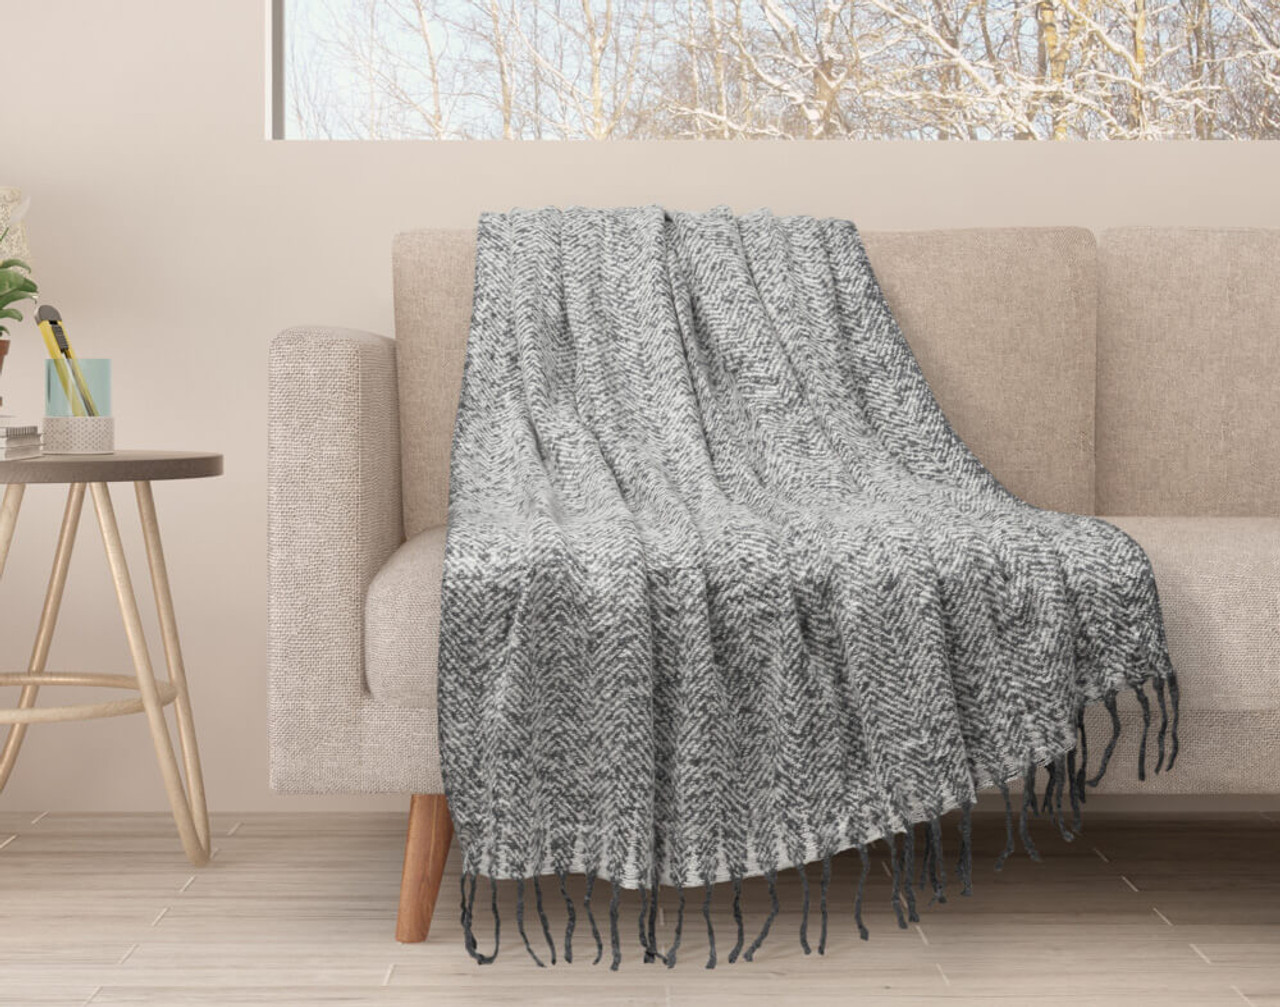 Our Grey Mix Herringbone Knit Fringe Throw draped over a couch.